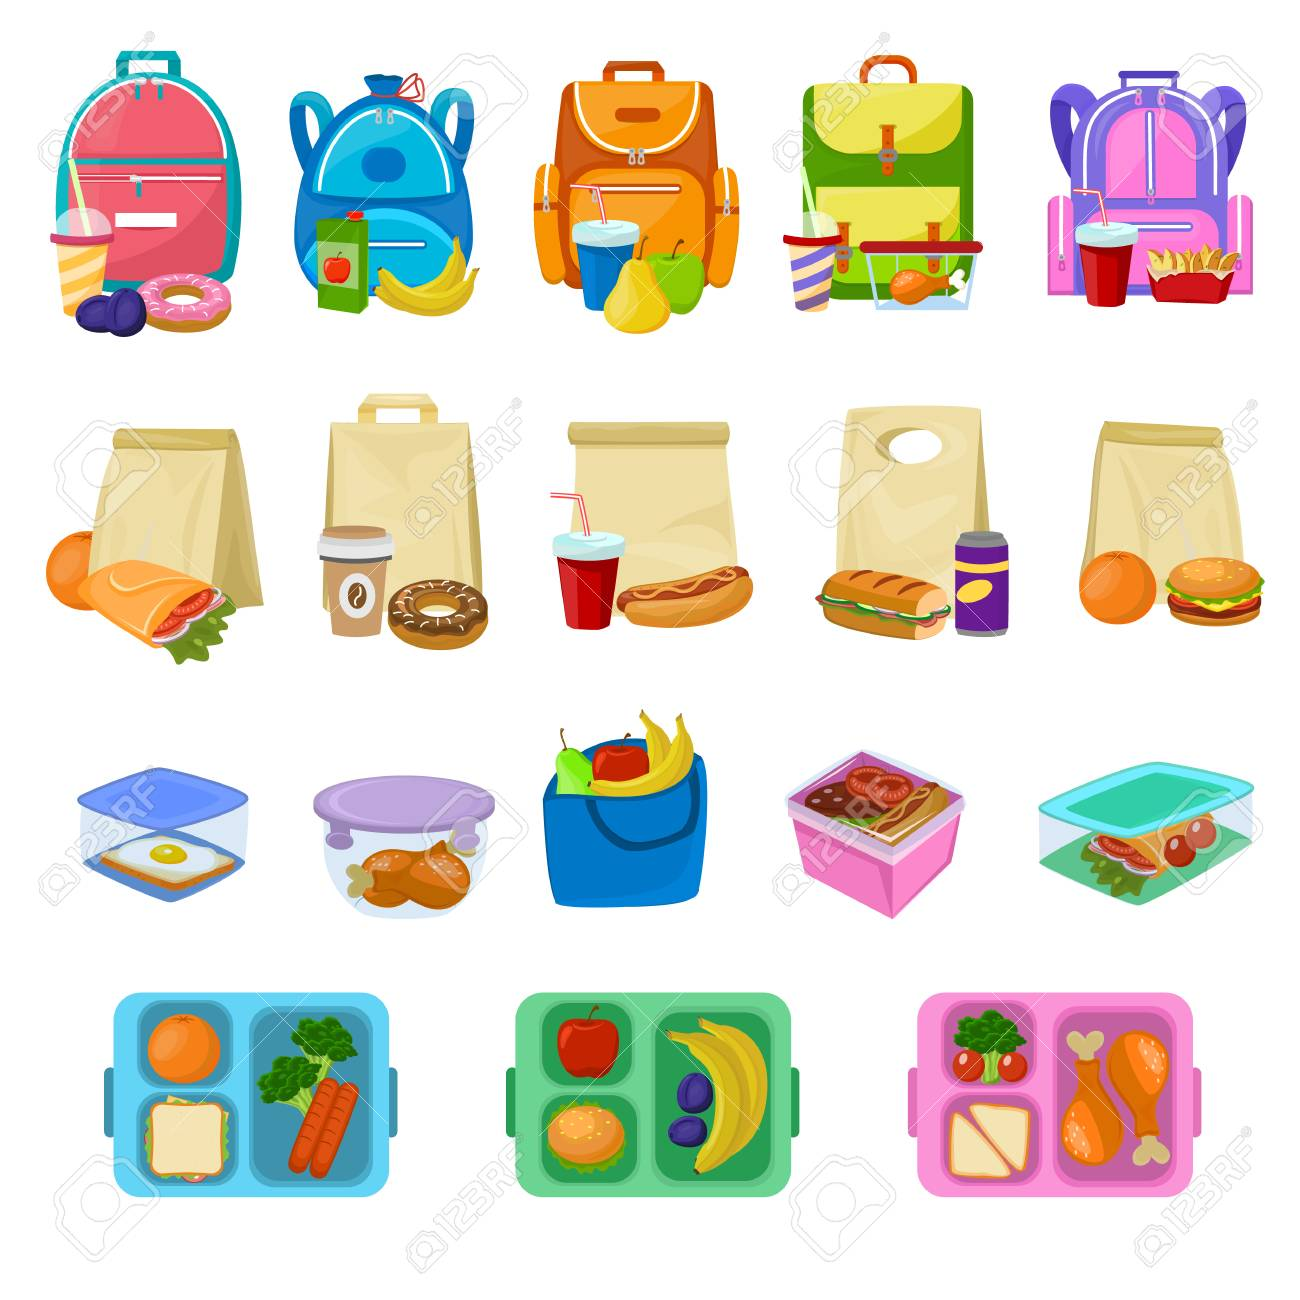 Lunch box vector school lunchbox with healthy food fruits or vegetables boxed in kids container illustration set of packed meal sausages or bread isolated on white background - 100957076